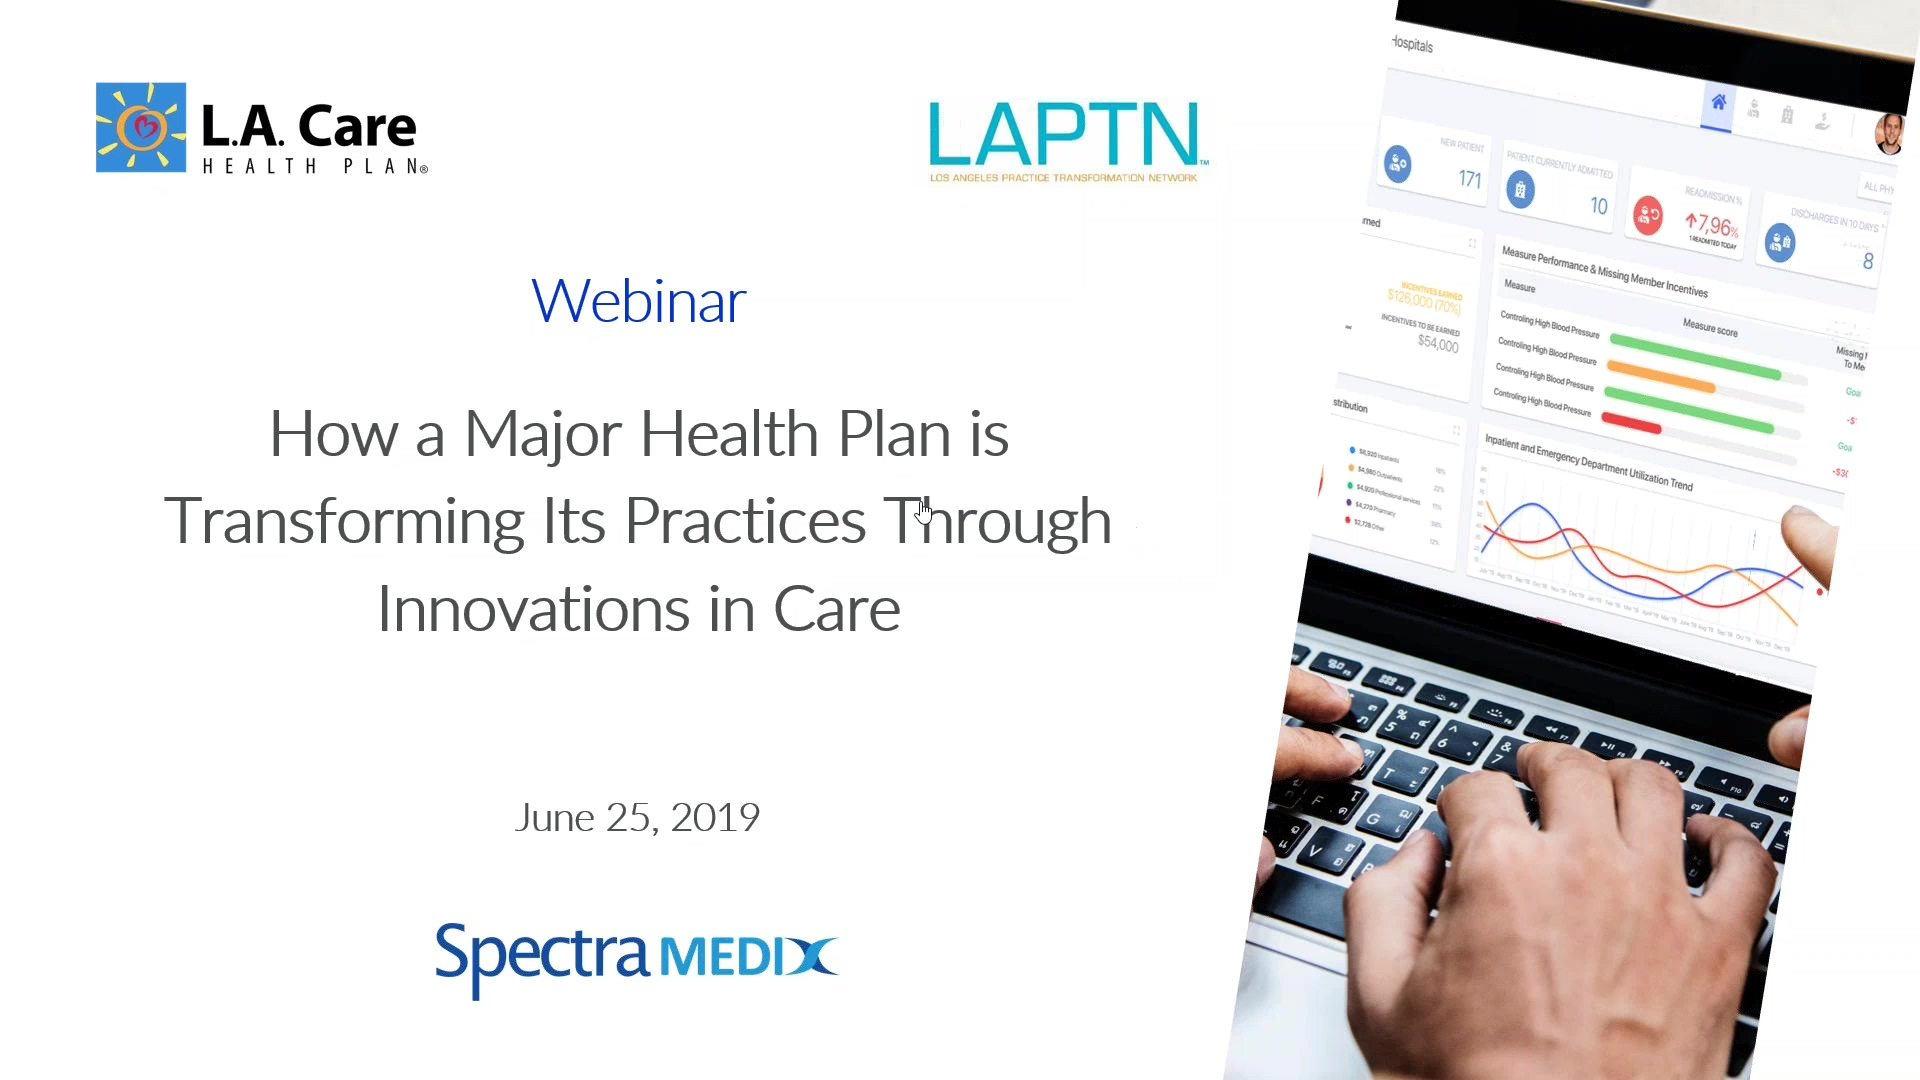 2019-06-25 13.59 How L.A. Care Health Plan is Transforming its Practices Through Innovations in Care-thumb